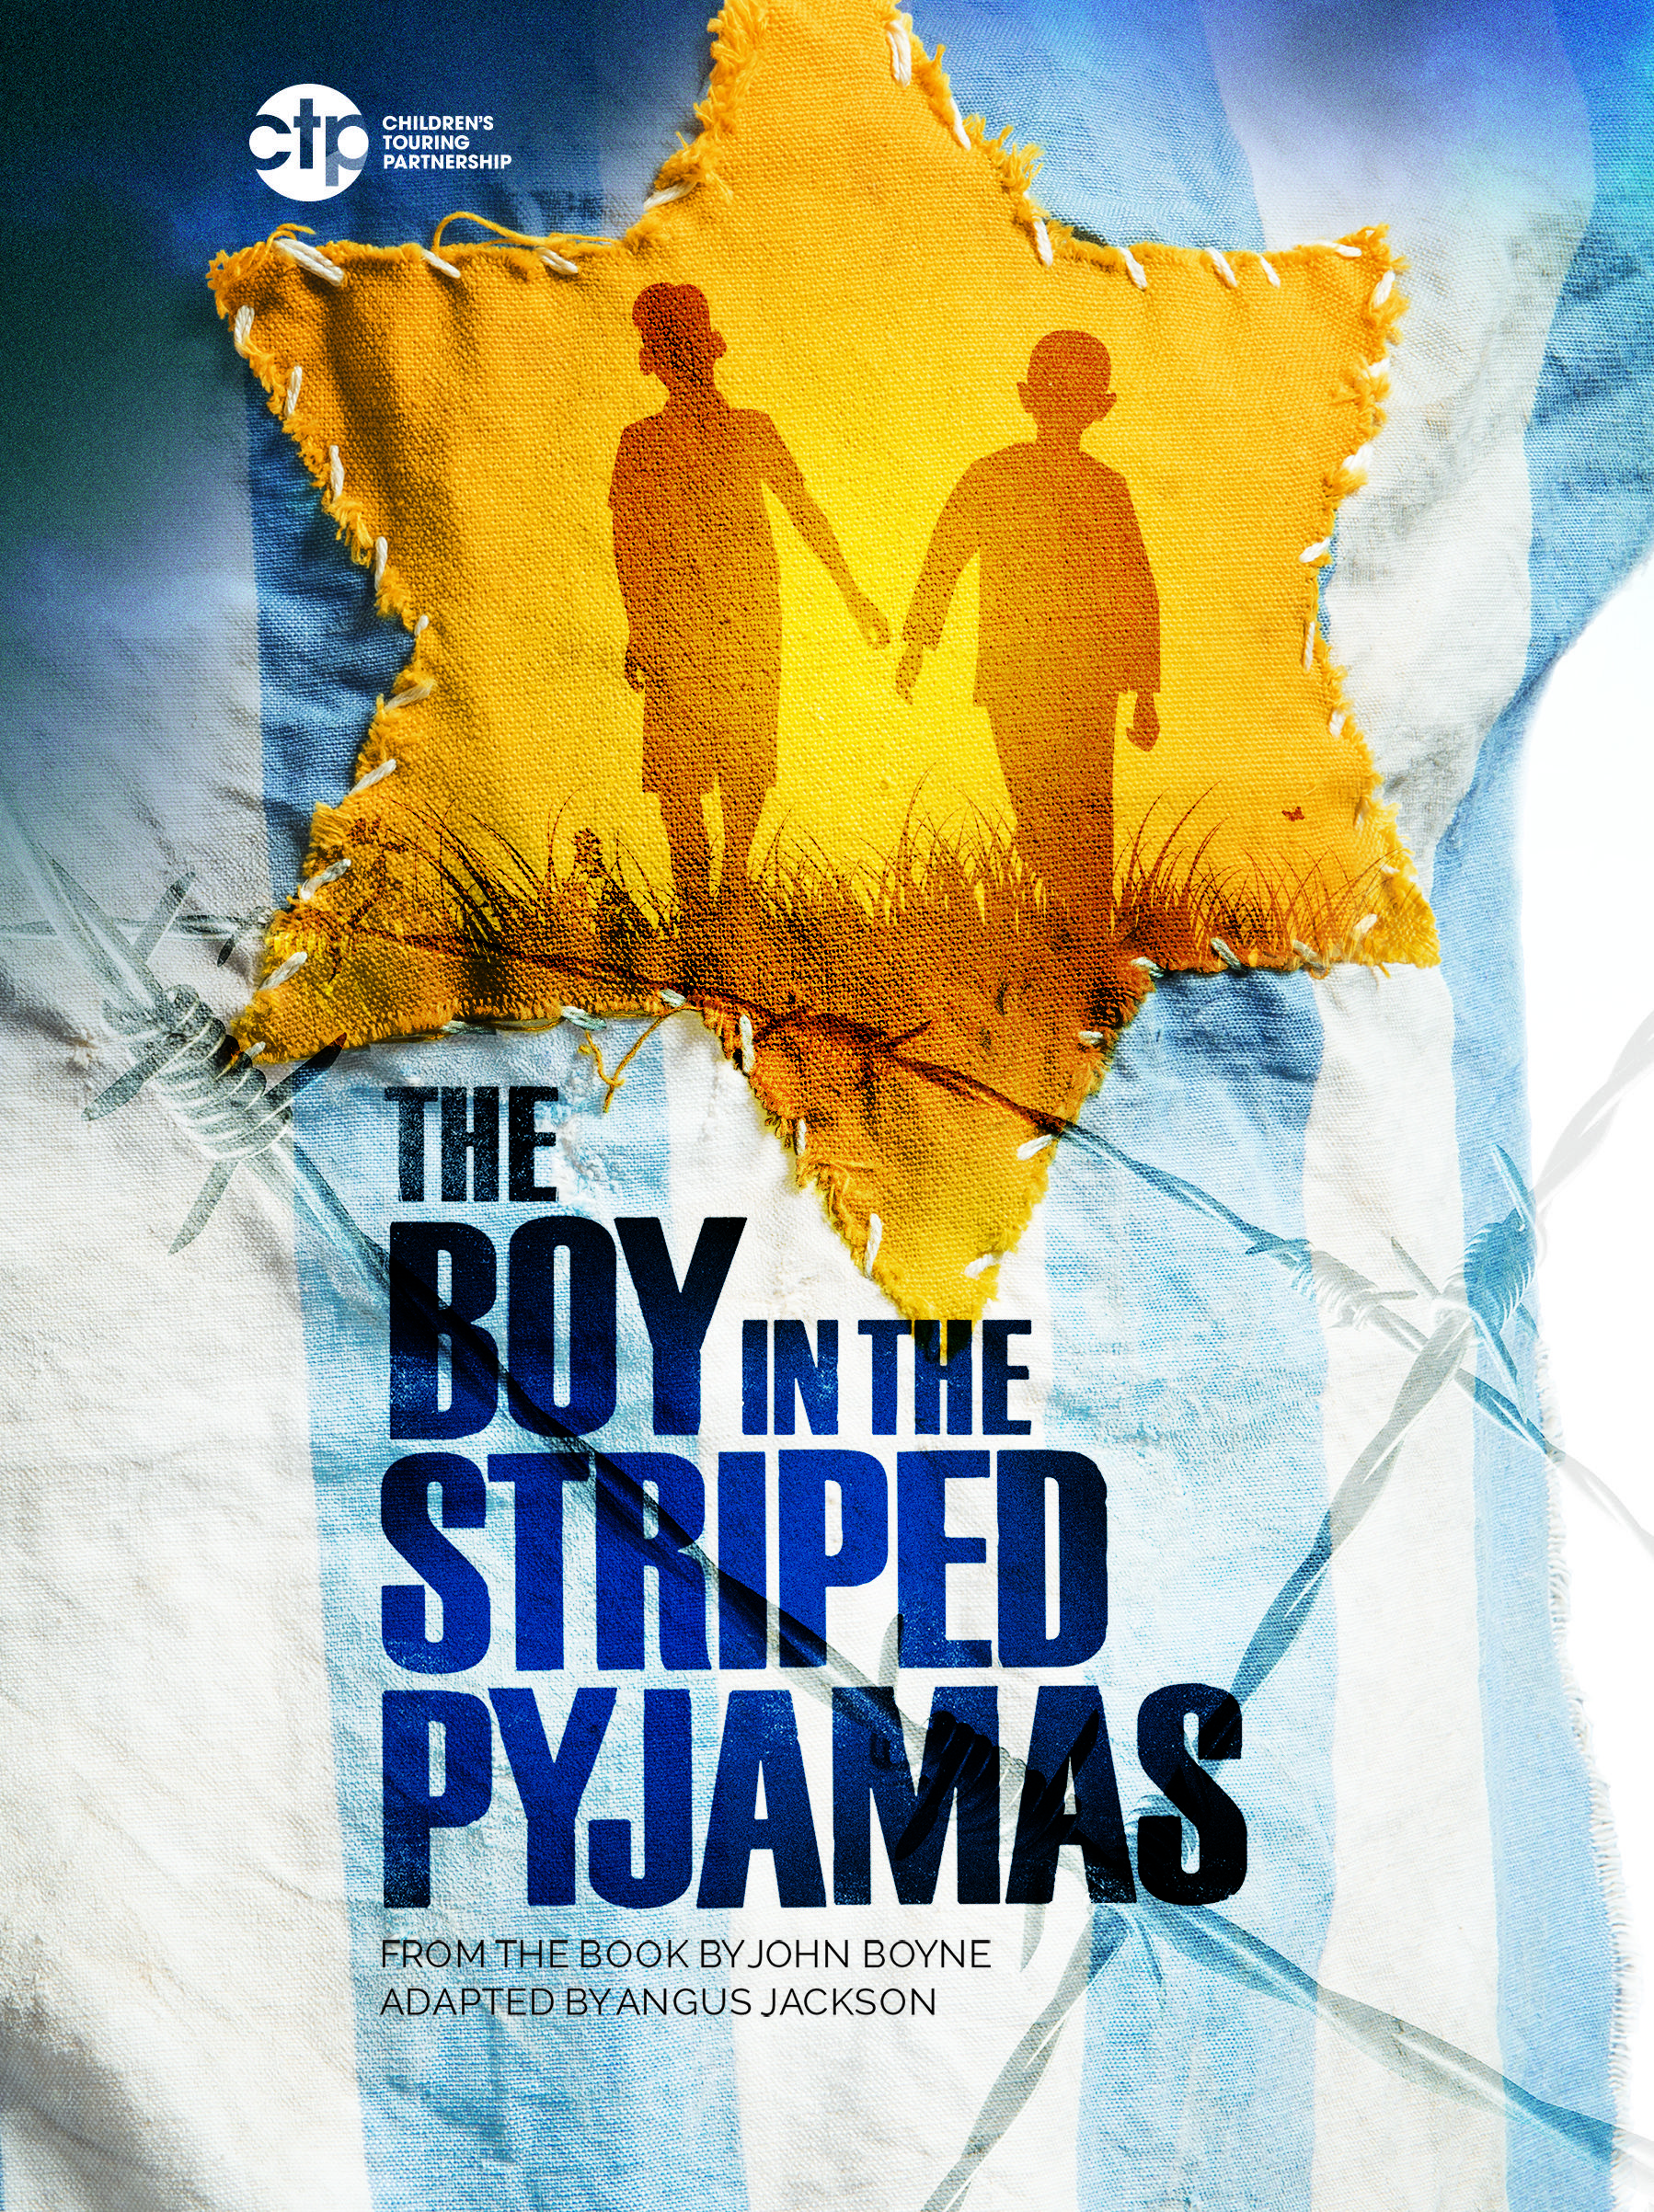 Based on the bestselling novel the boy in the striped